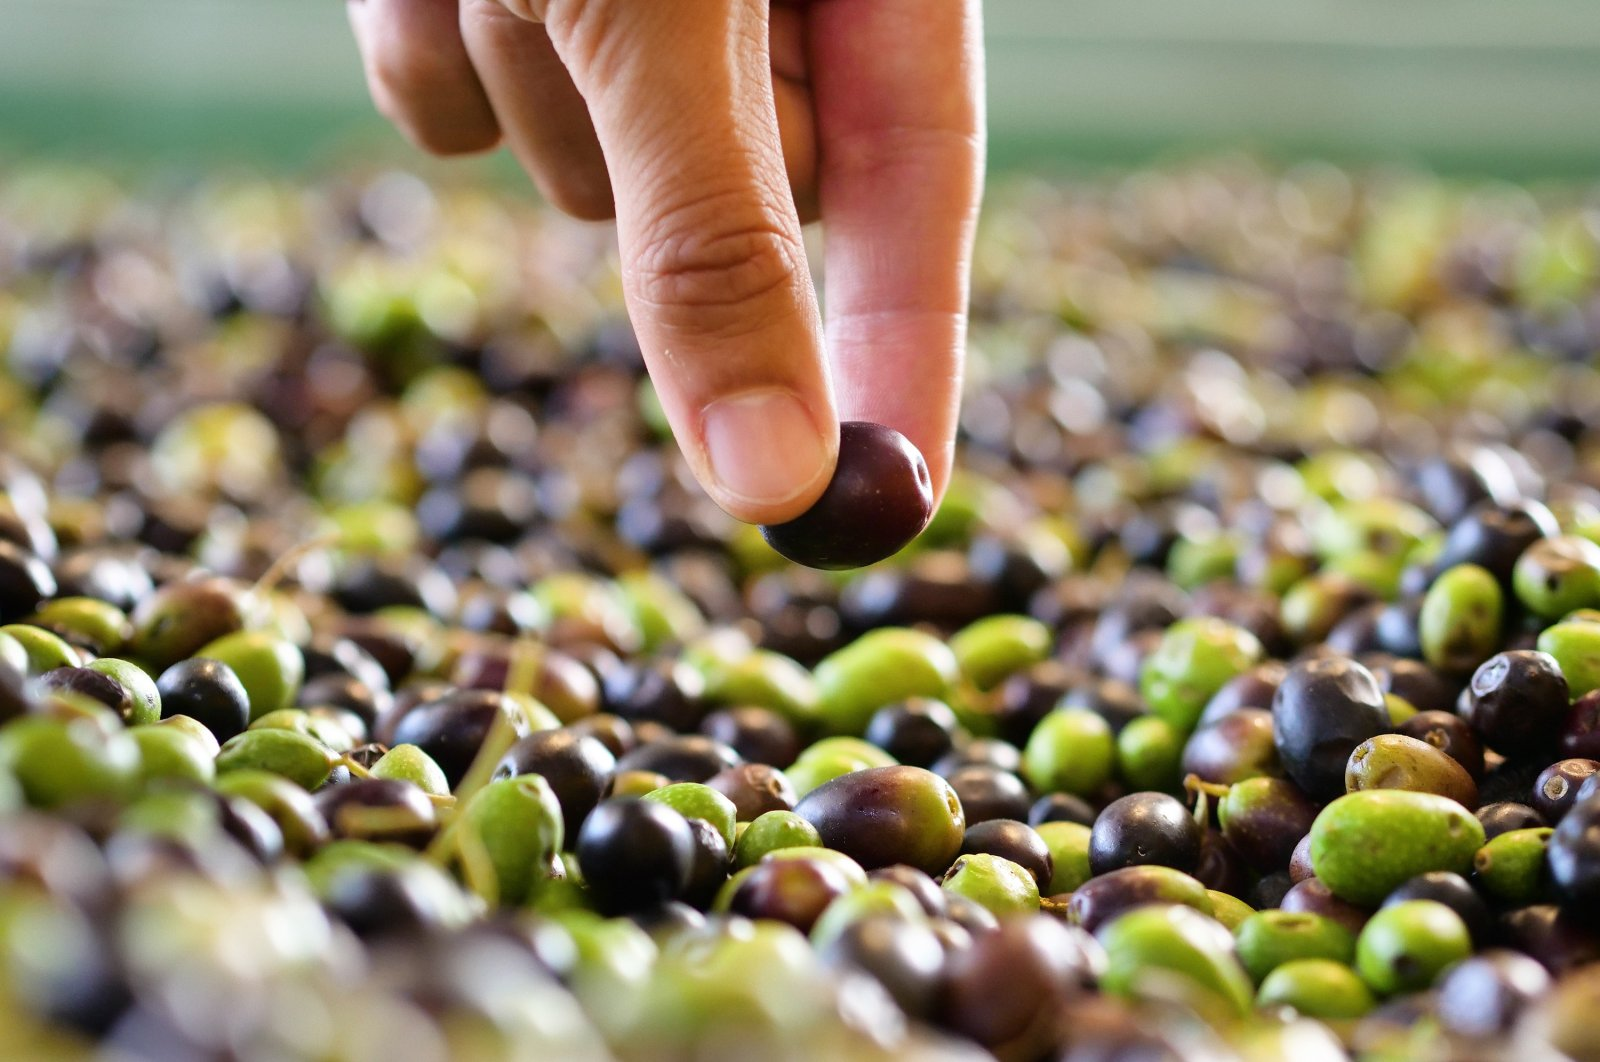 If picking olives to make oil, pick those with a light yellow color from the earliest harvest. (Shutterstock Photo)